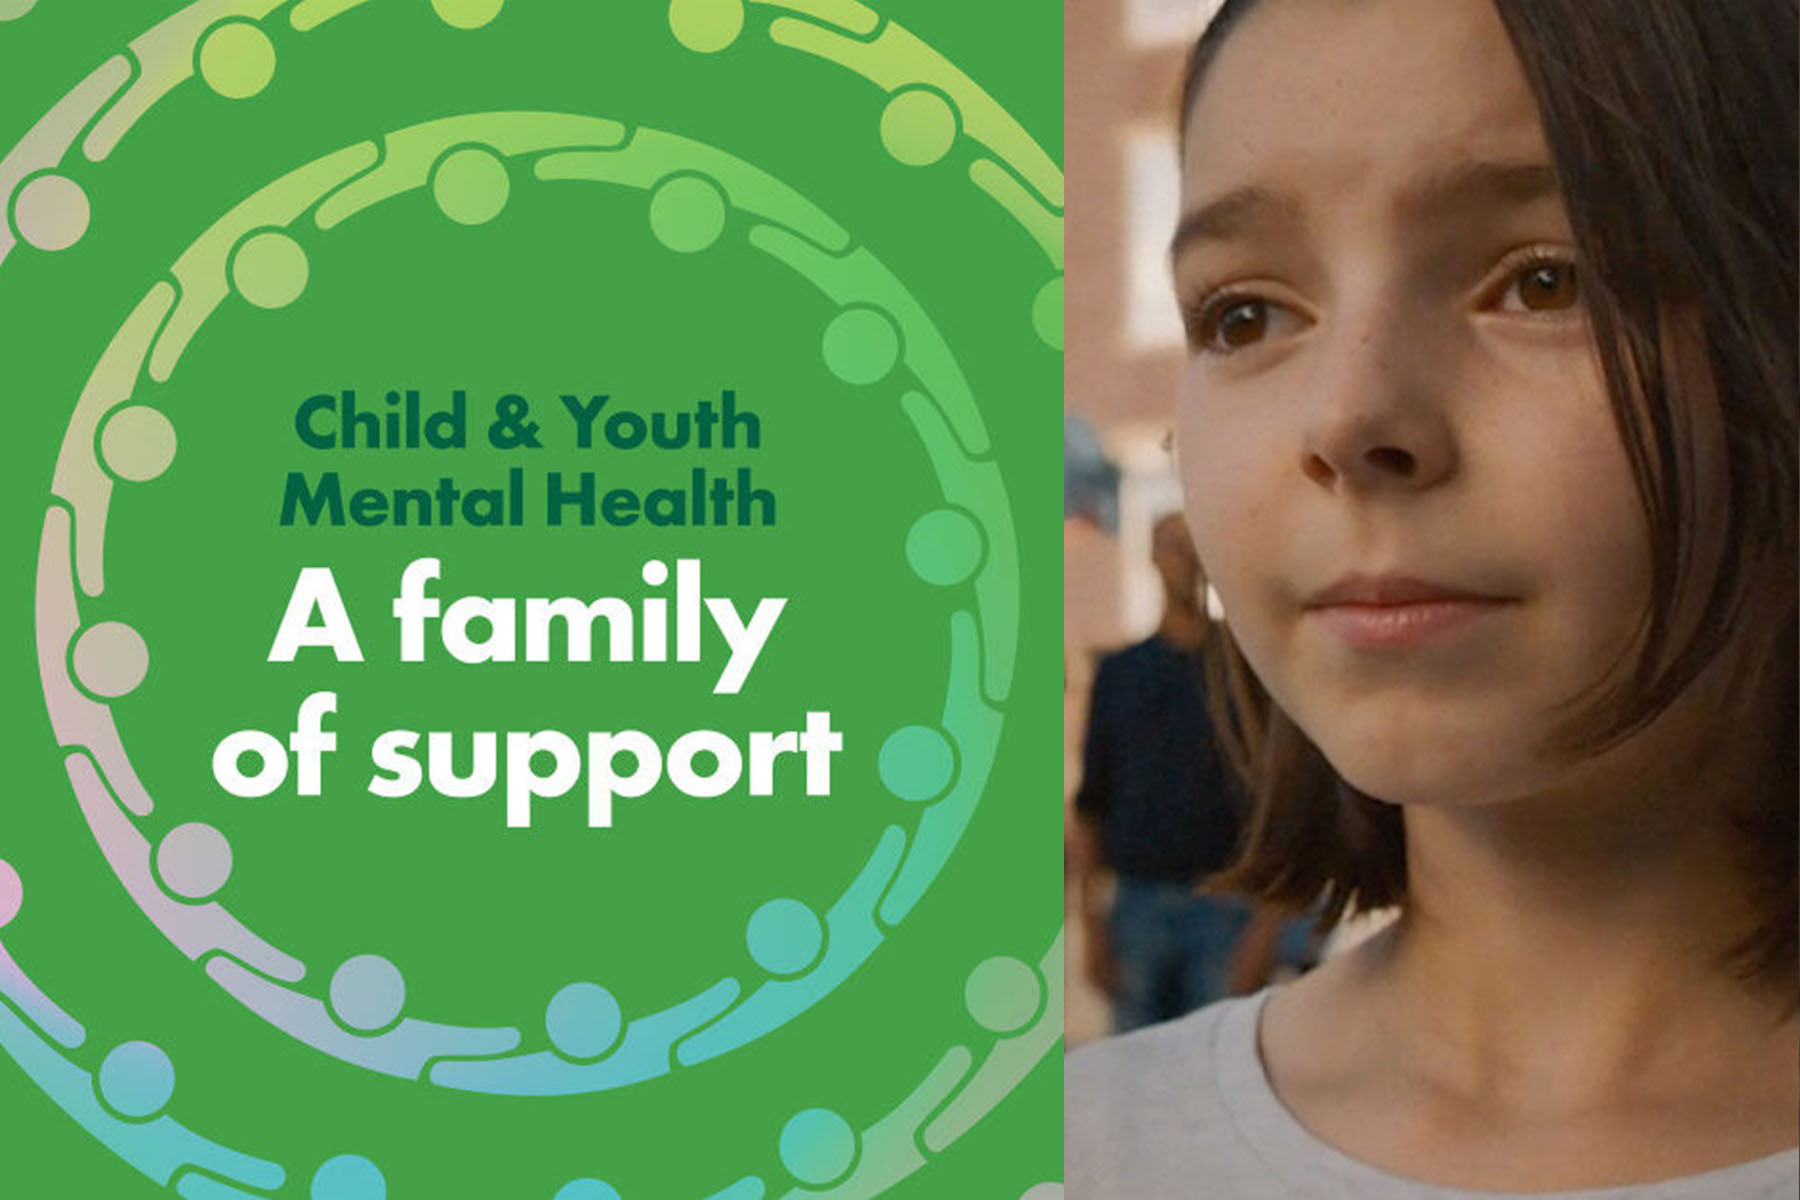 An image from the Family of Support campaign